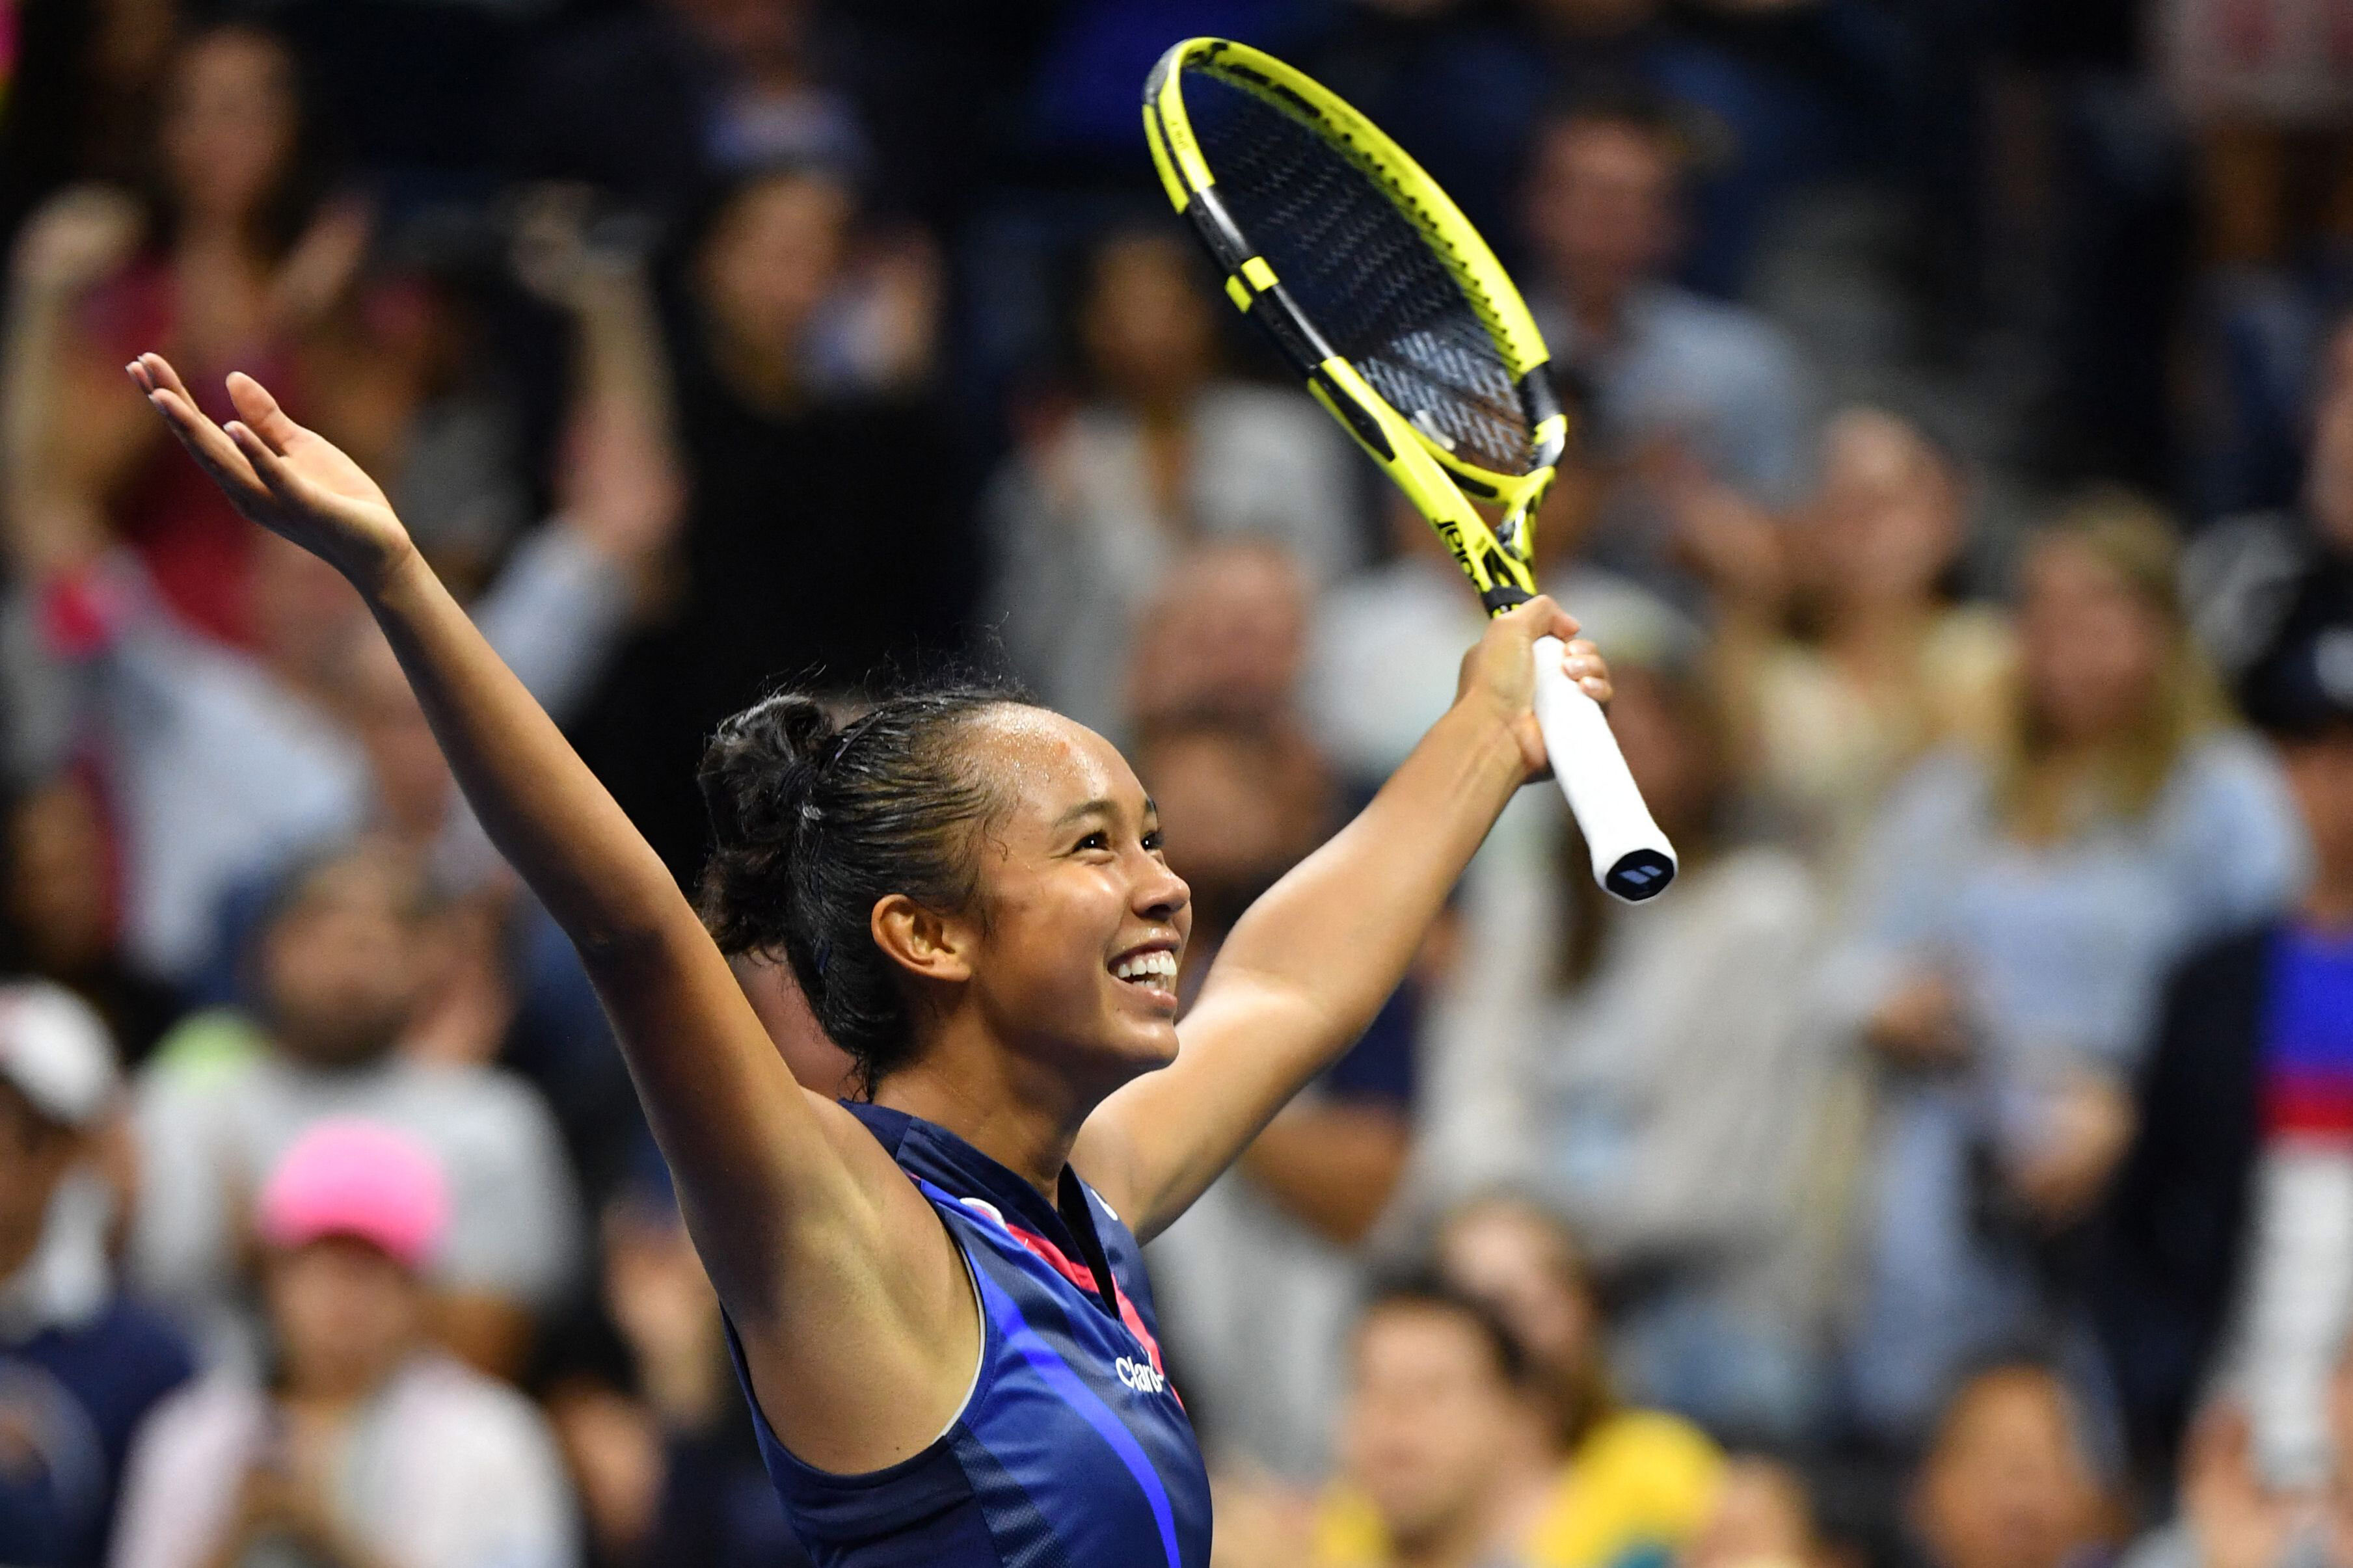 Naomi Osaka considering taking another break from tennis after US Open loss